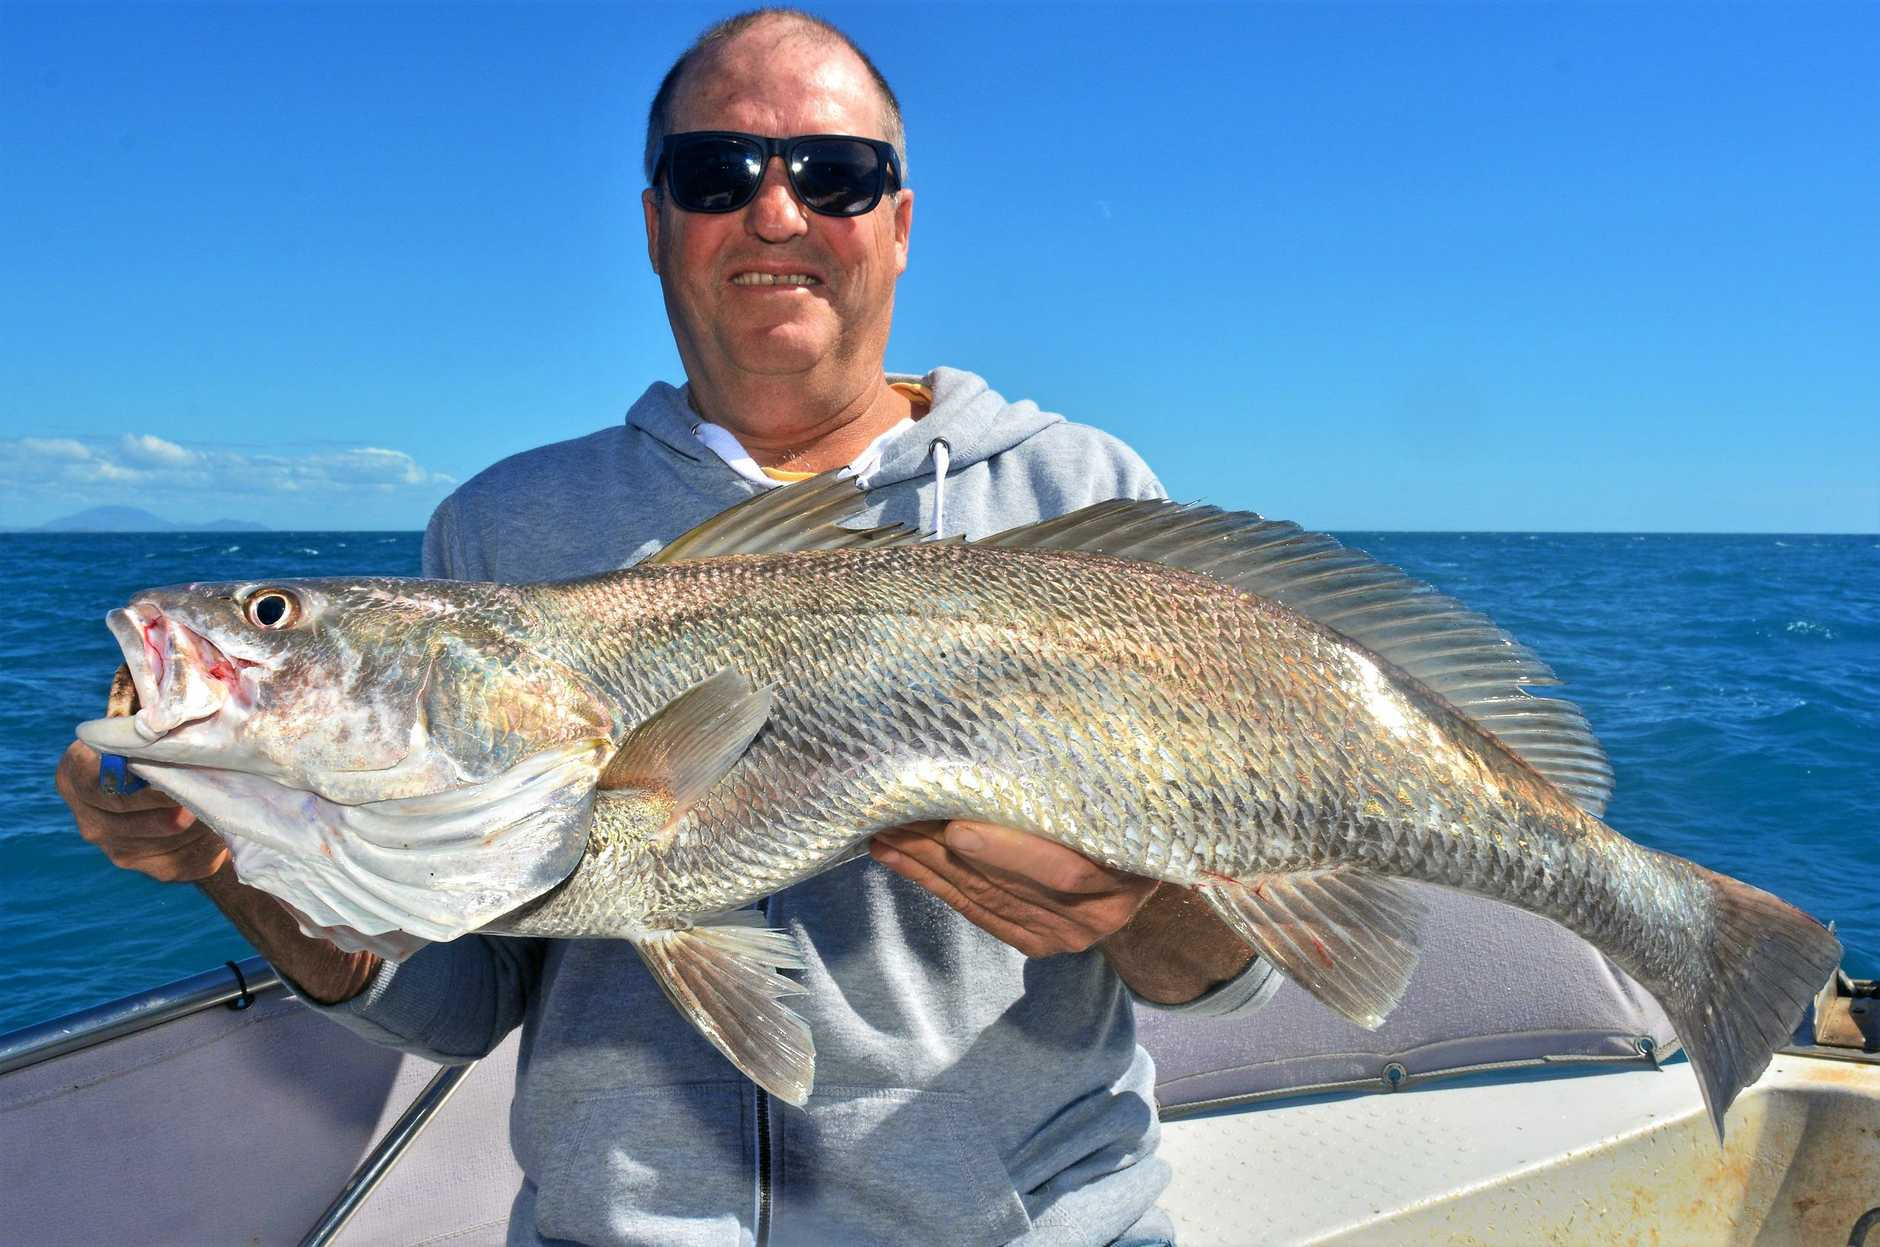 LANDED: Dave Cronan with one of many nice black jewfish that have been coming up from the depths while out on the water with Reel Addiction Sport Fishing Charters.